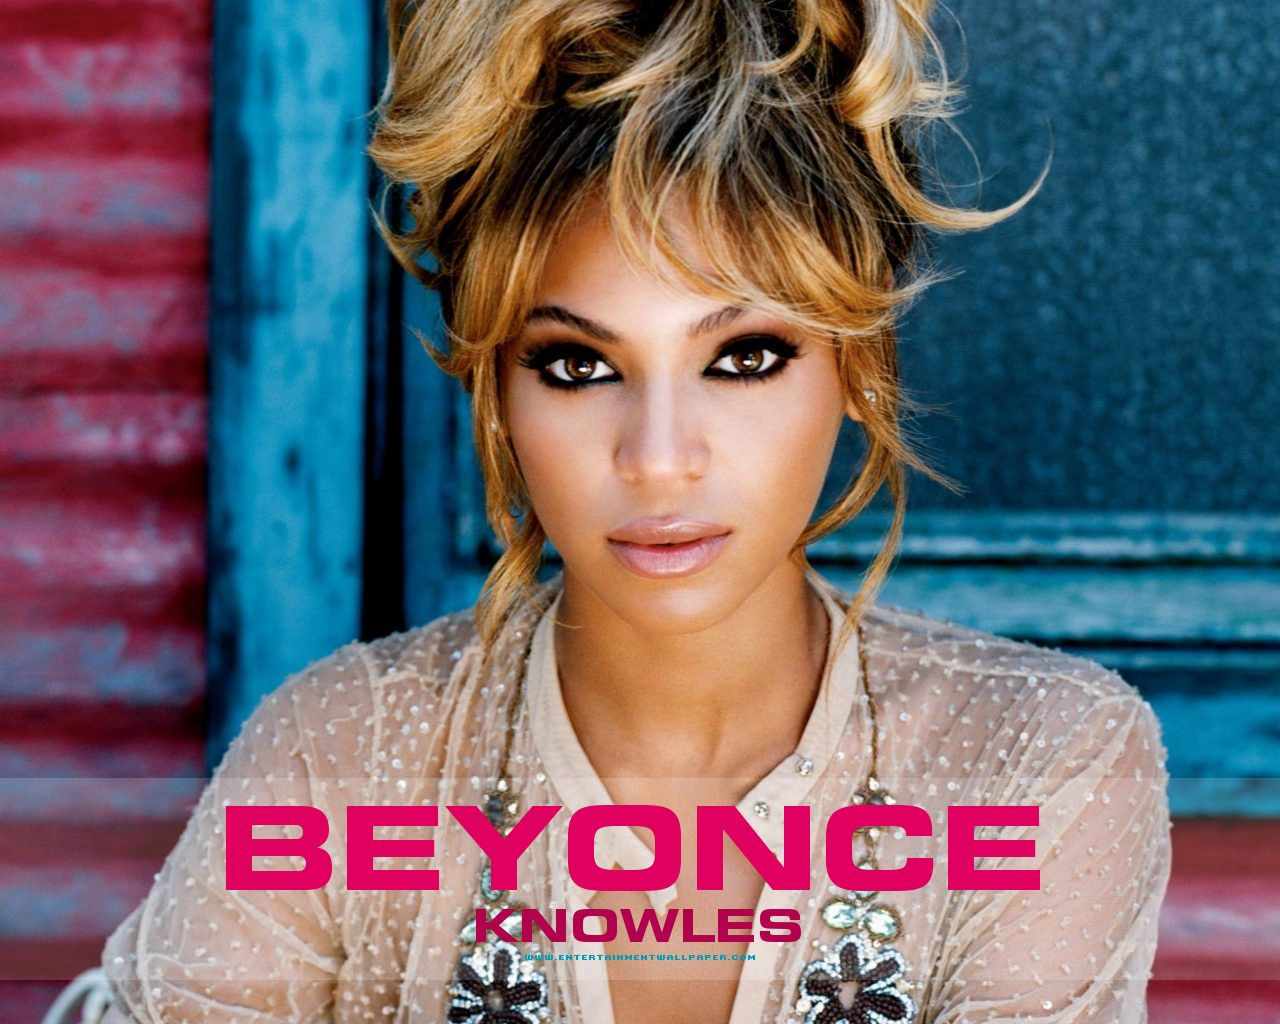 Beyonce images Beyonce HD wallpaper and background photos ...